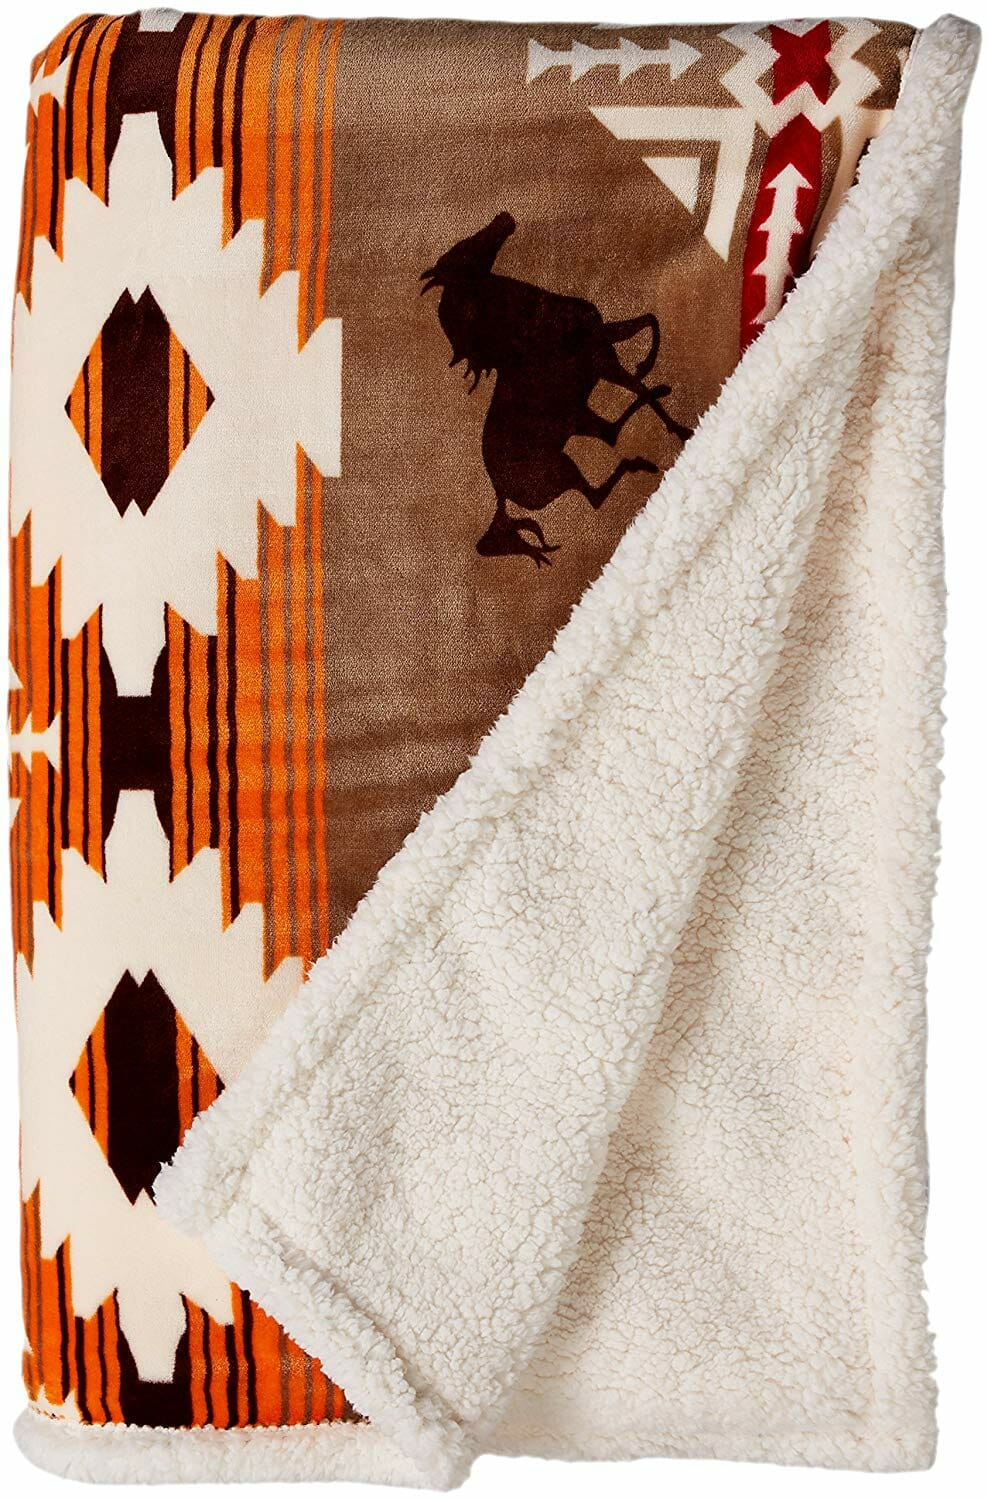 gifts-for-horse-lovers-blanket